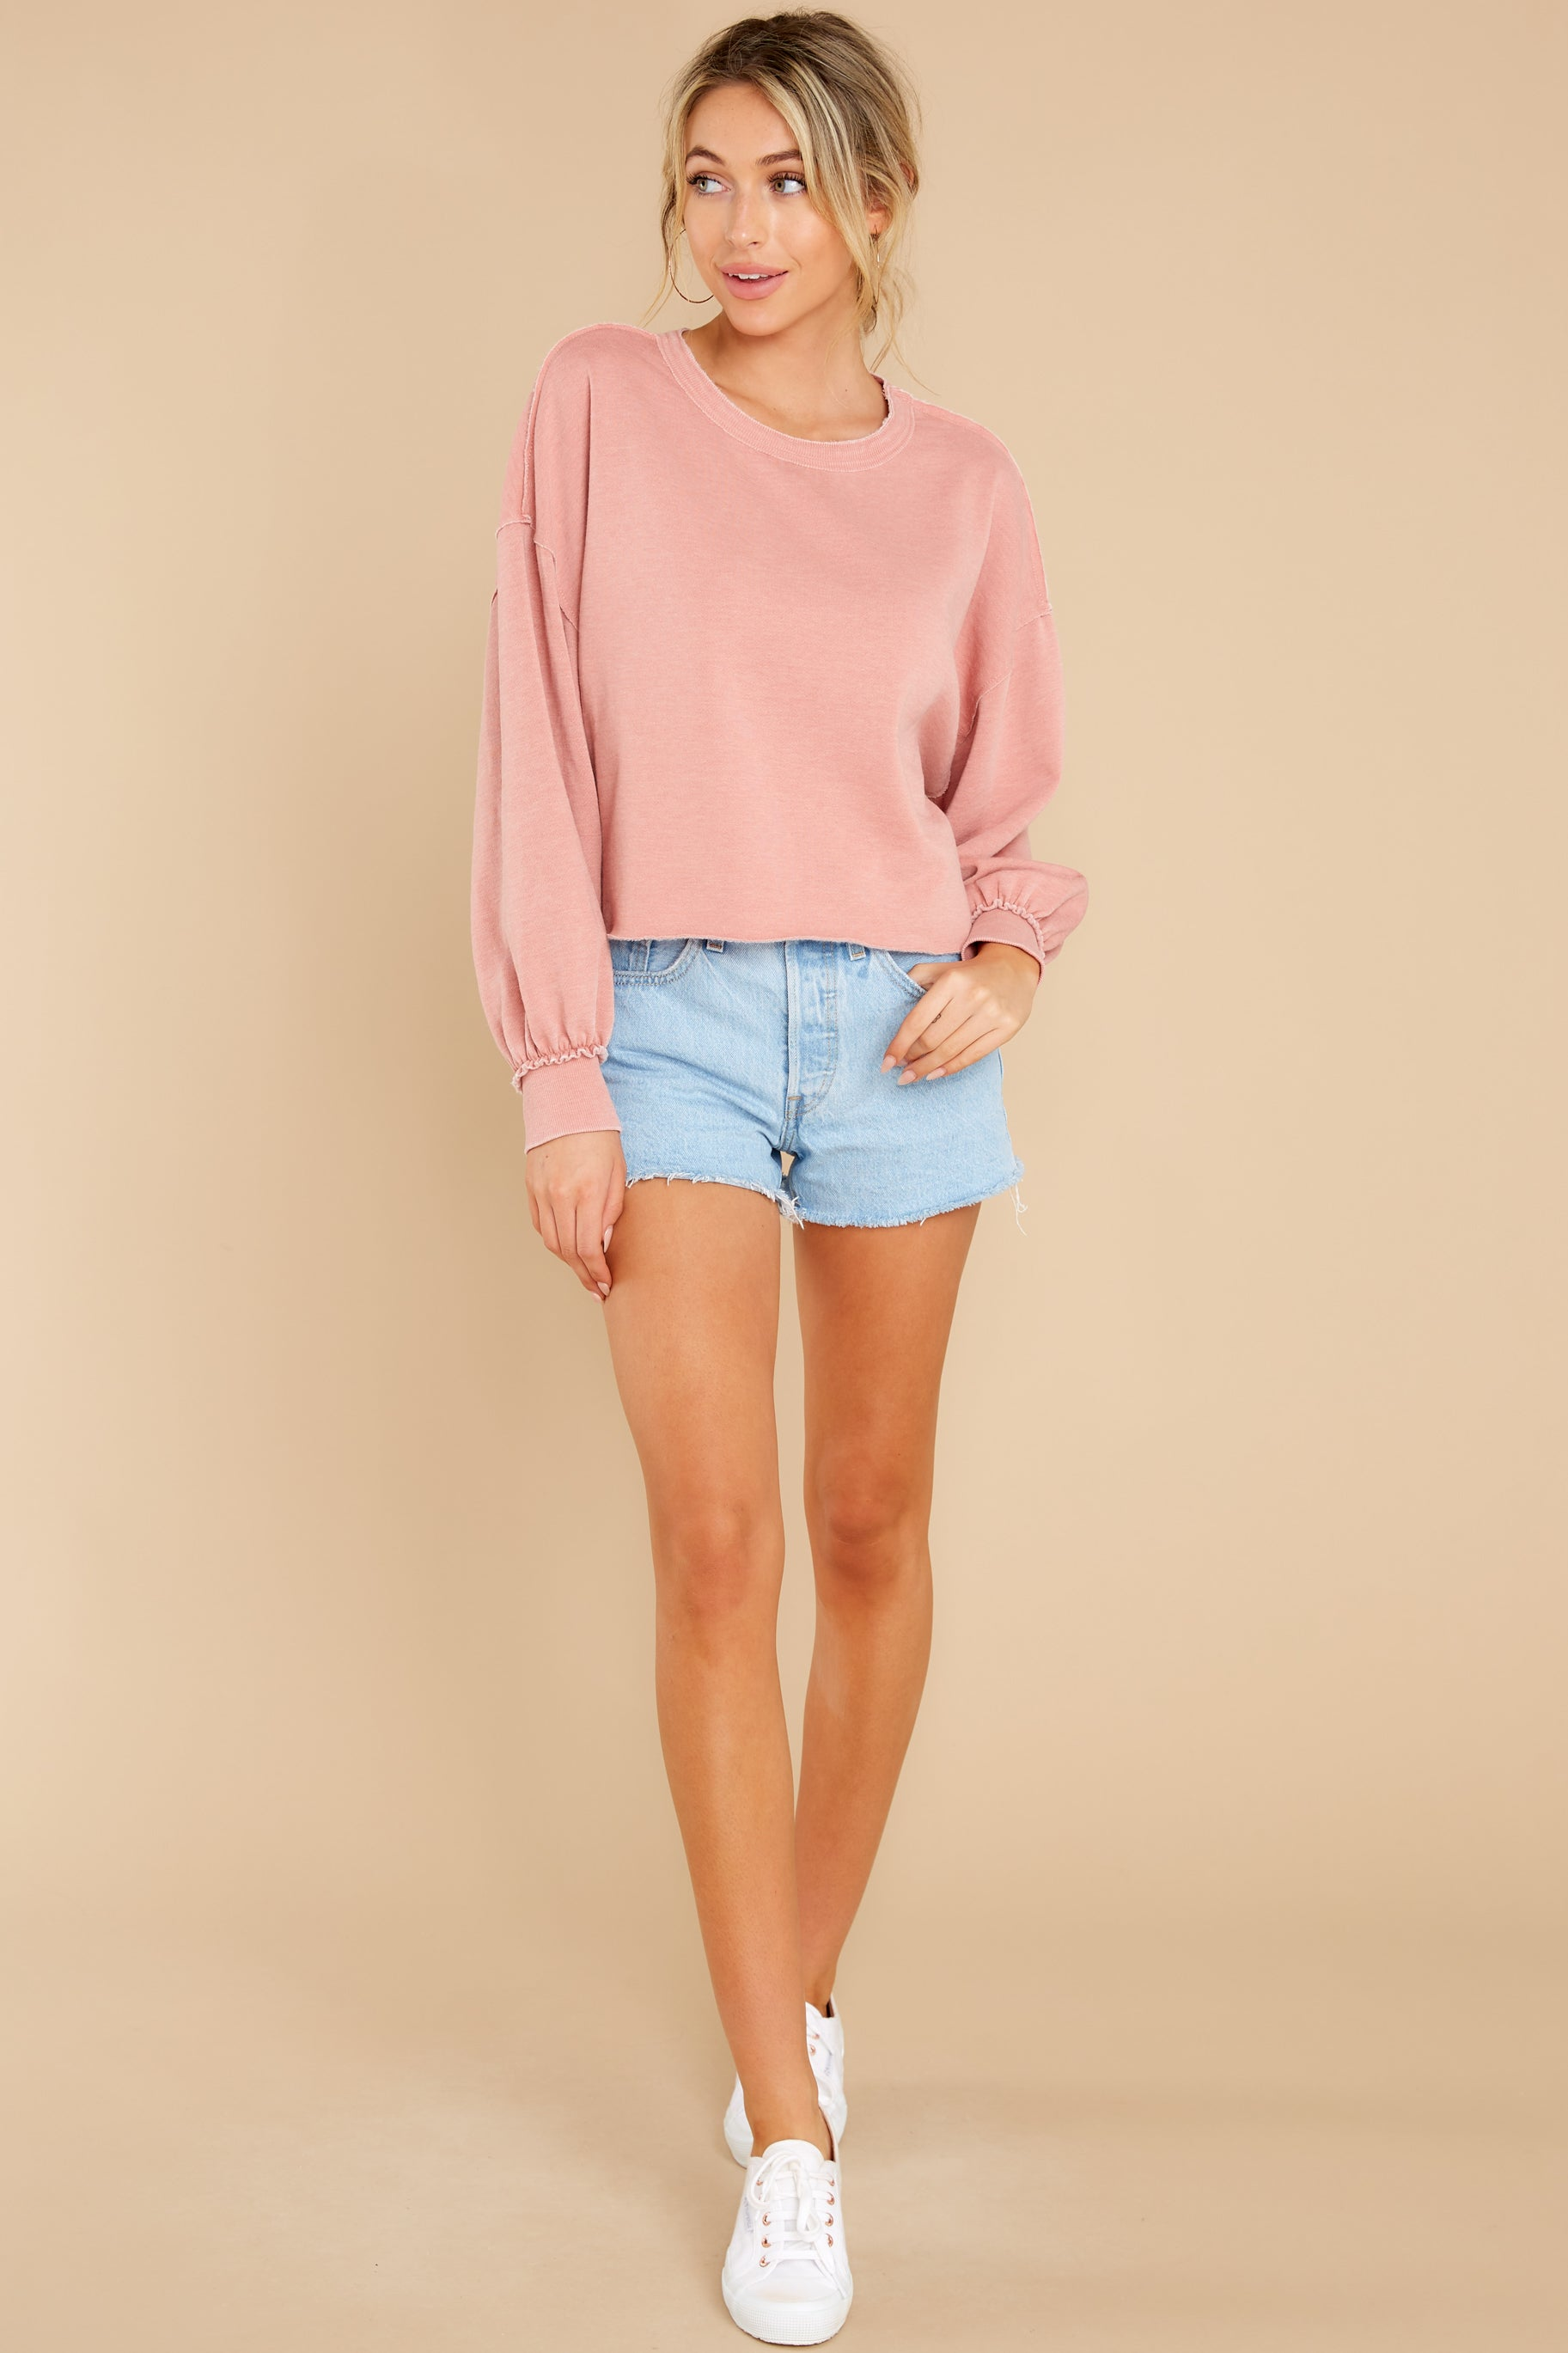 5 Tempest Petal Pink Sweatshirt at reddress.com